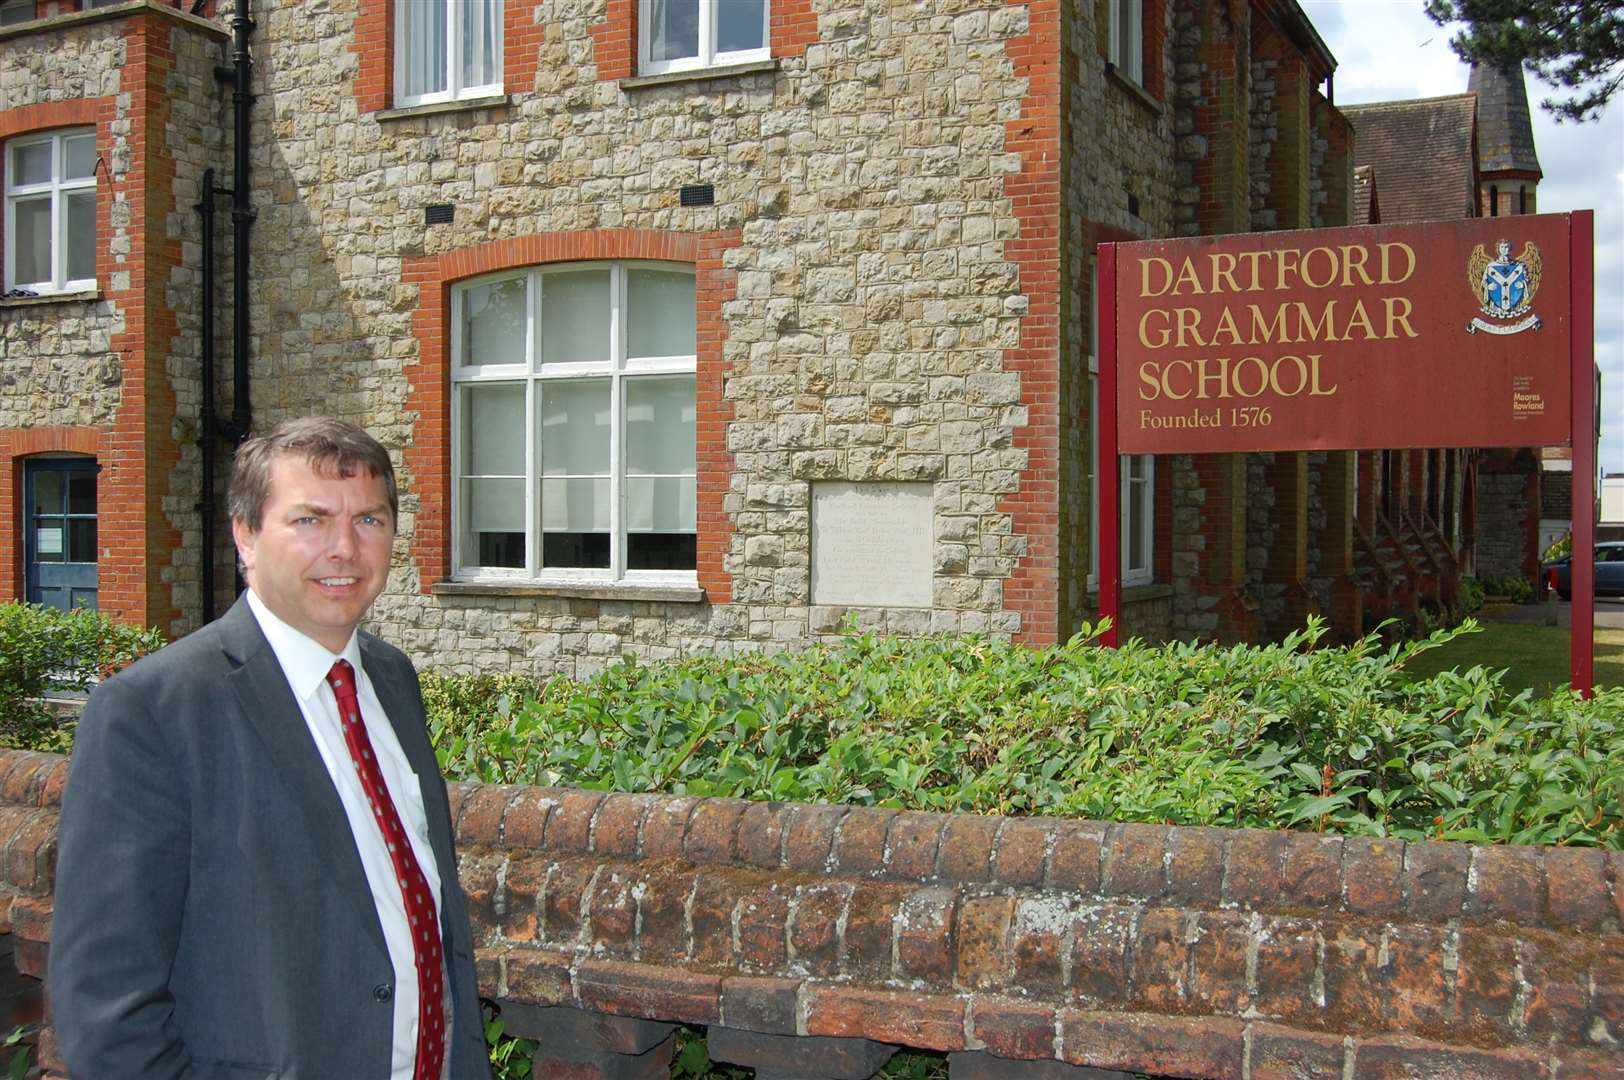 Dartford MP Gareth Johnson wants to see the law changed to allow for new grammar schools to be built both in his constituency and across the country.